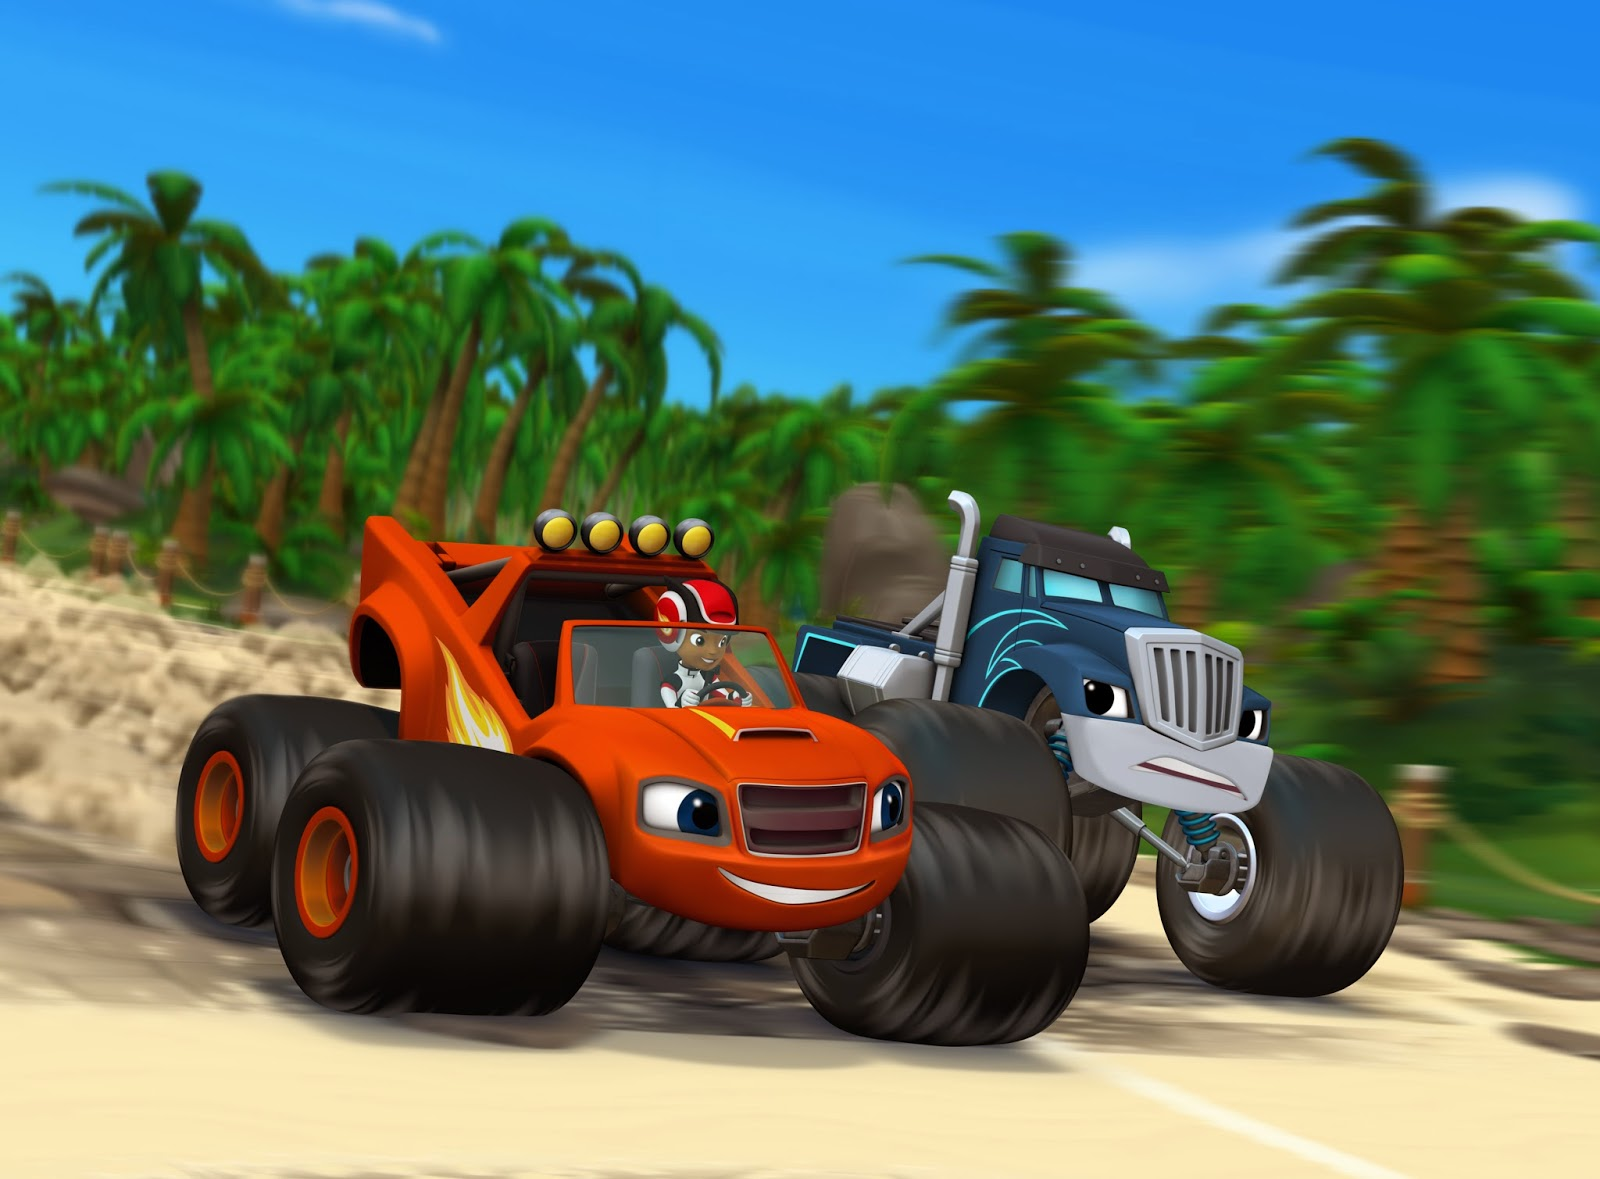 Blaze And The Monster Machines Games Online - Play for ...